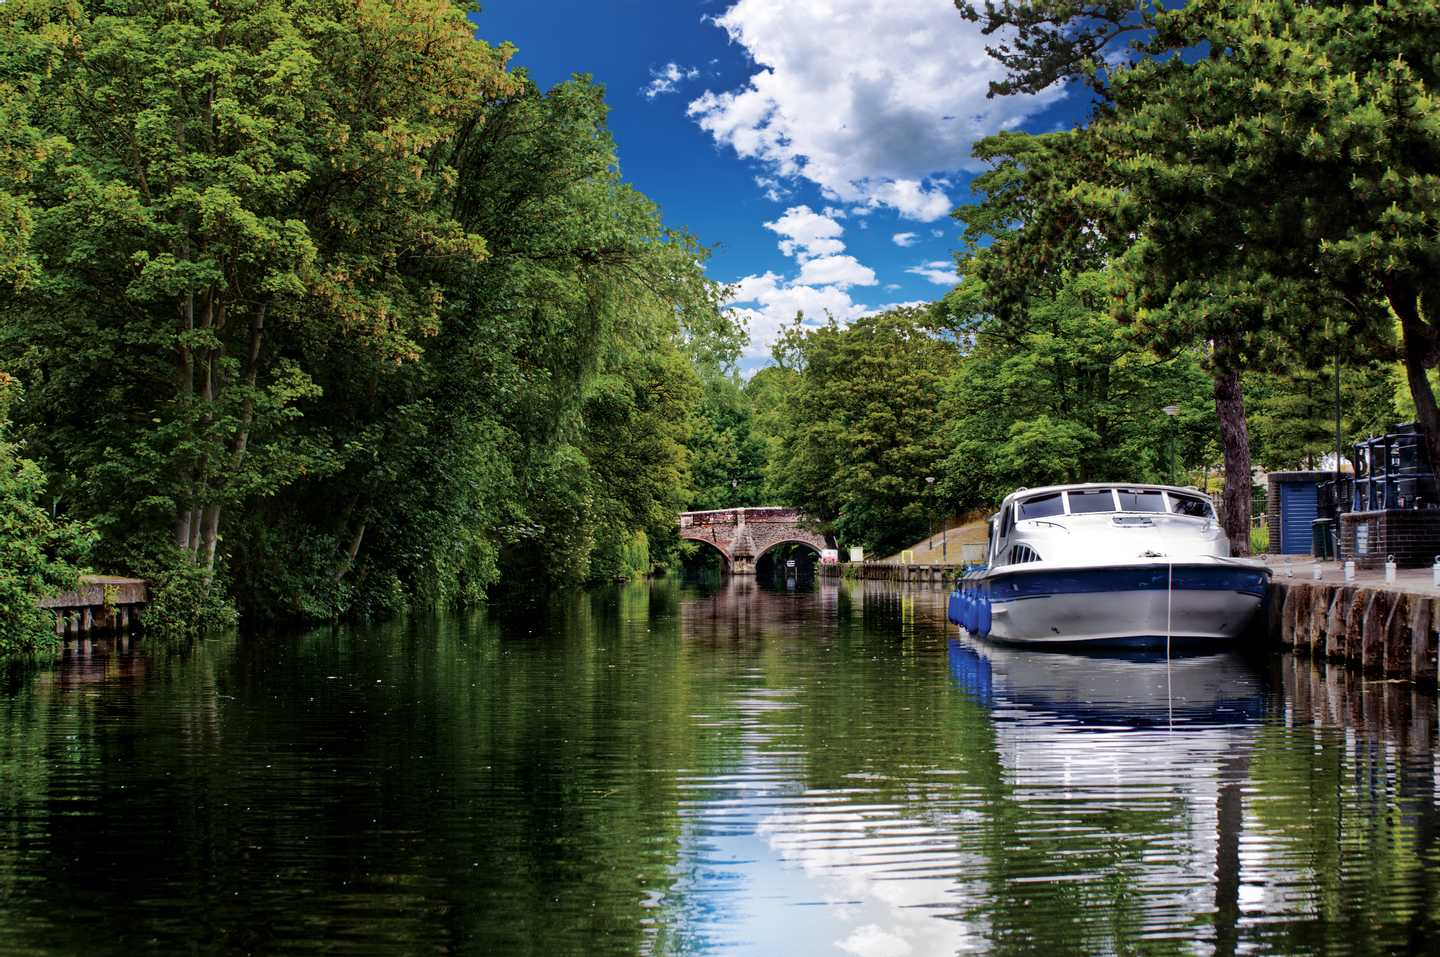 Boat hire at Norfolk Broads